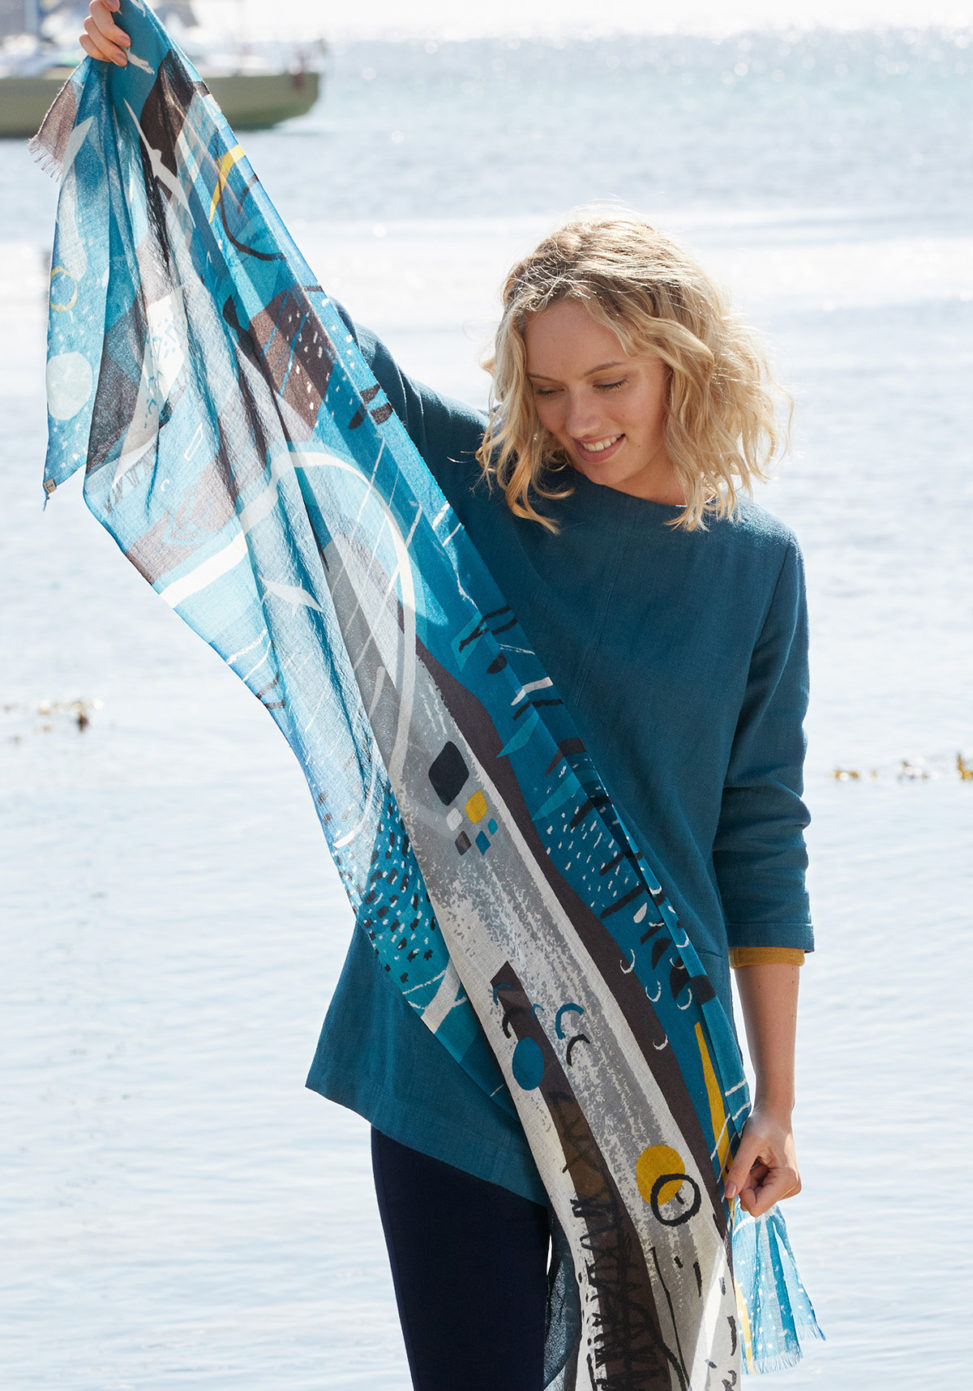 Isles of Scilly abstract printed scarf by Matt Johnson for Seasalt Cornwall